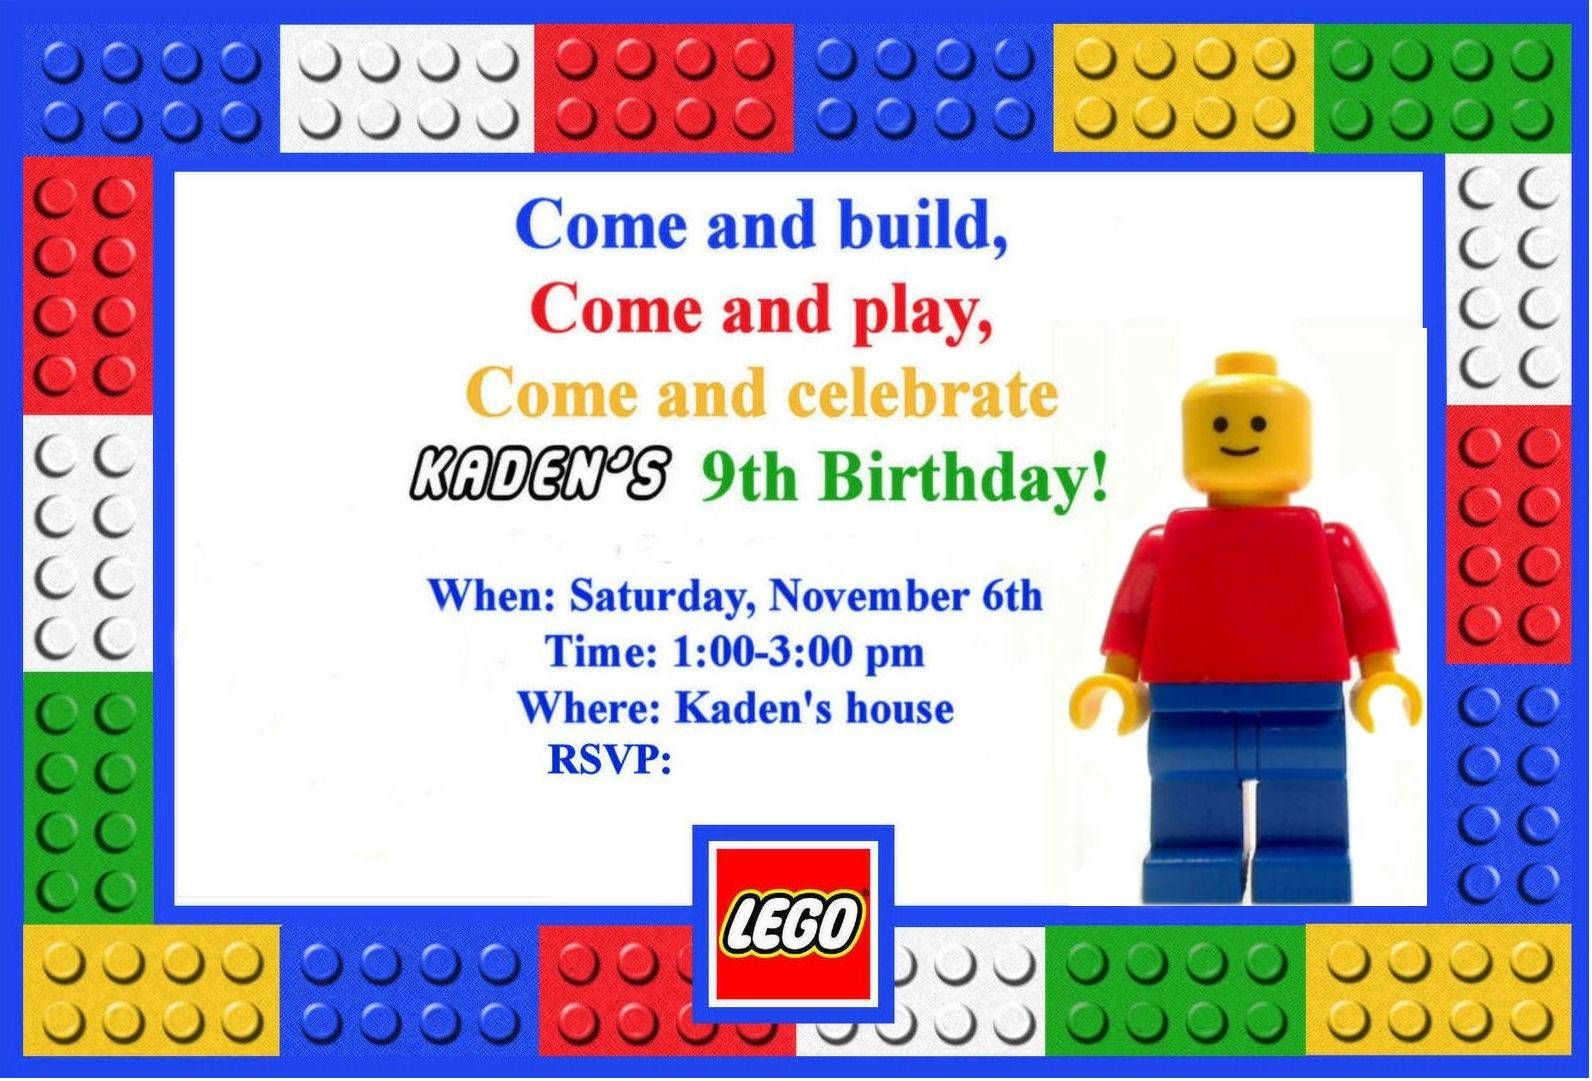 Free Printable Lego Birthday Invitations | Slctn Online - Lego Party Invitations Printable Free